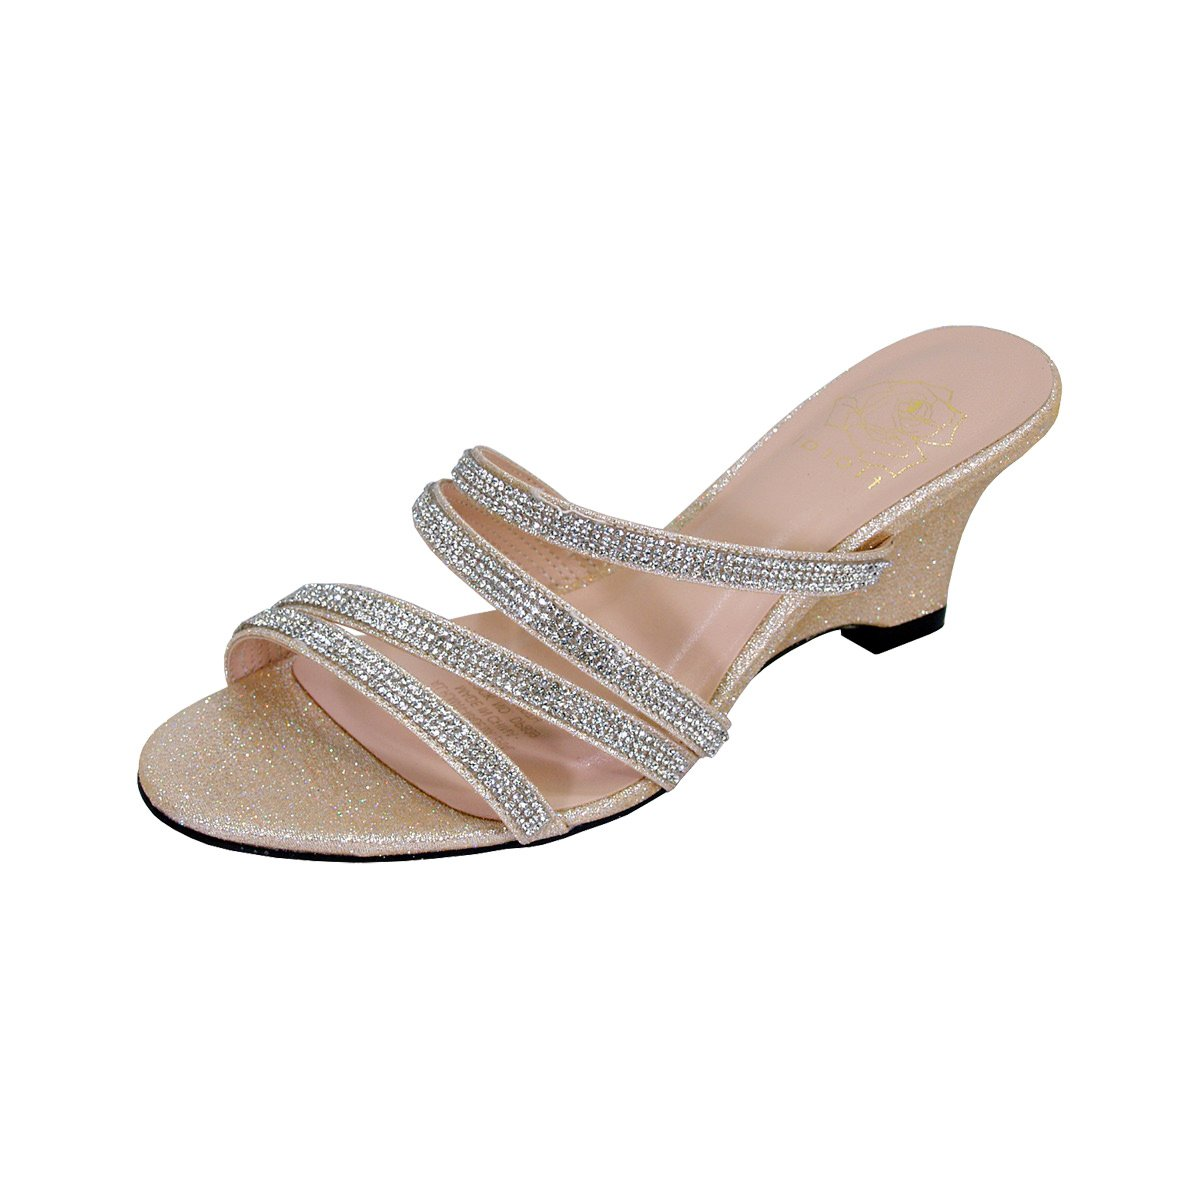 Floral Kelly Women Extra Wide Width Rhinestone Strappy Slip On Wedge Heeled Party Sandals Champagne 9